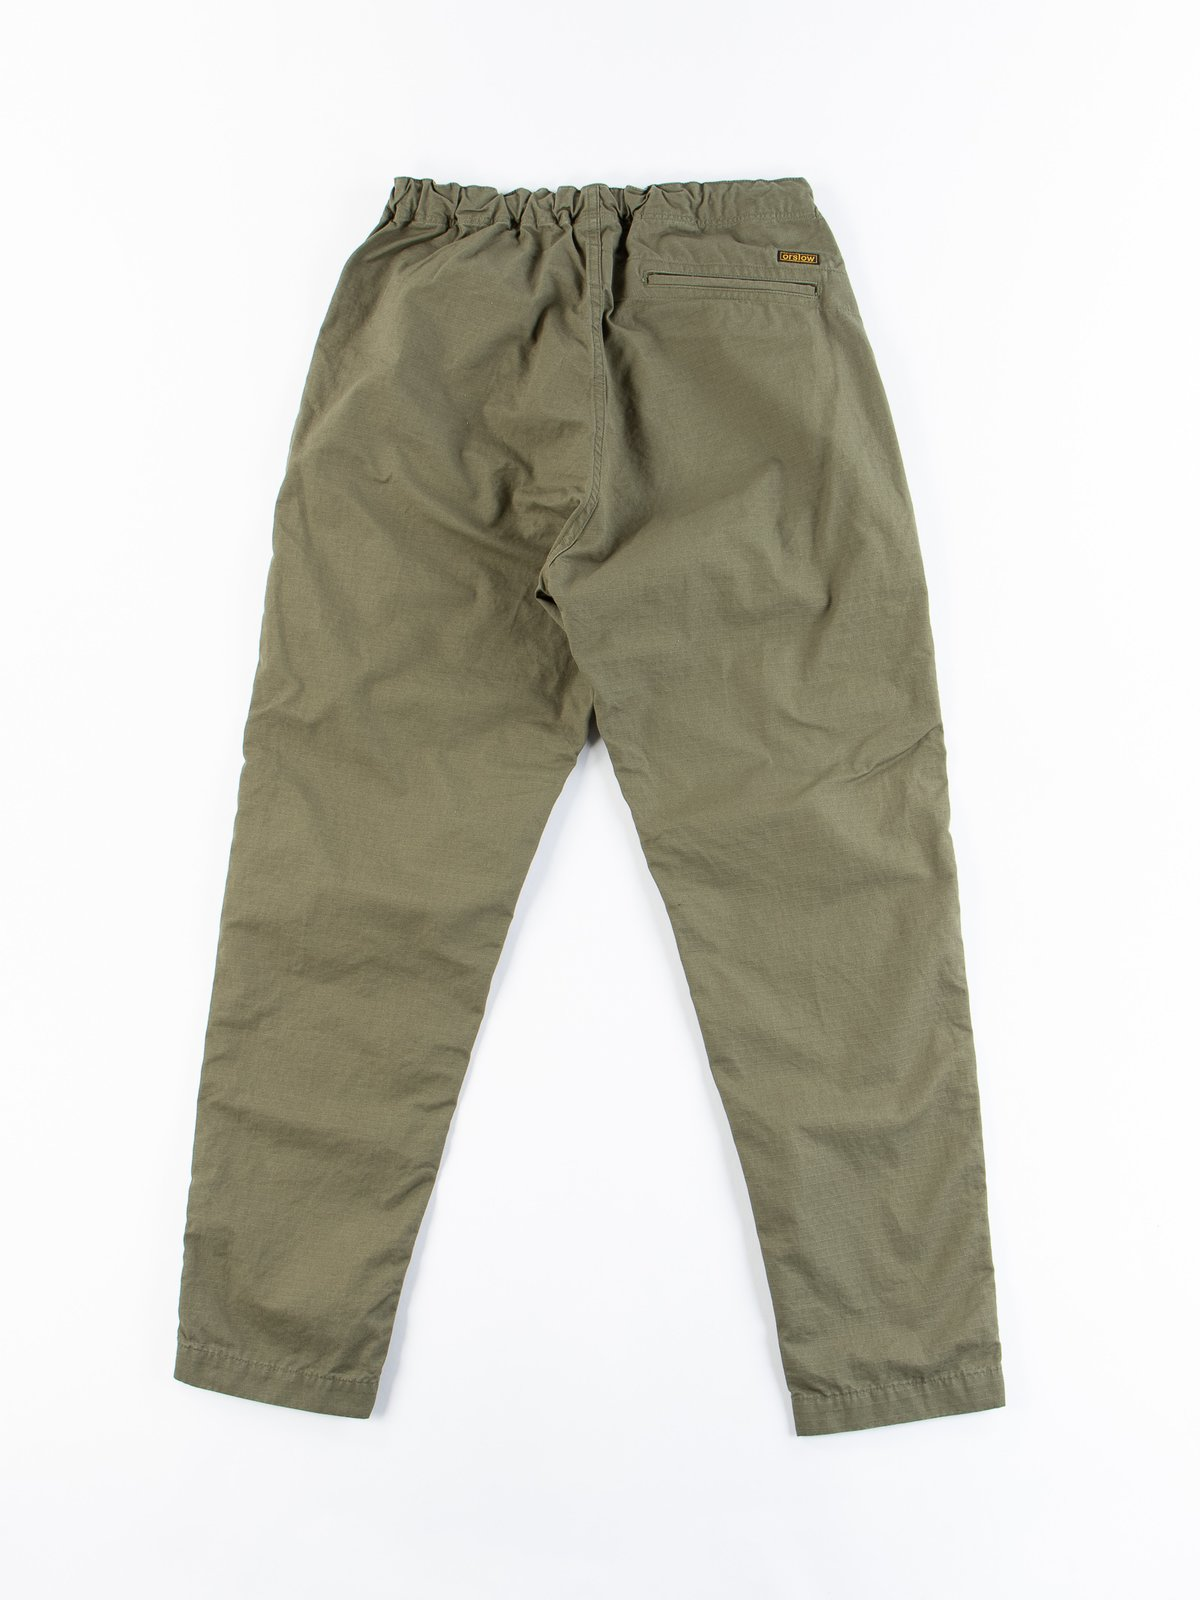 Army Green Ripstop New Yorker Pant - Image 4